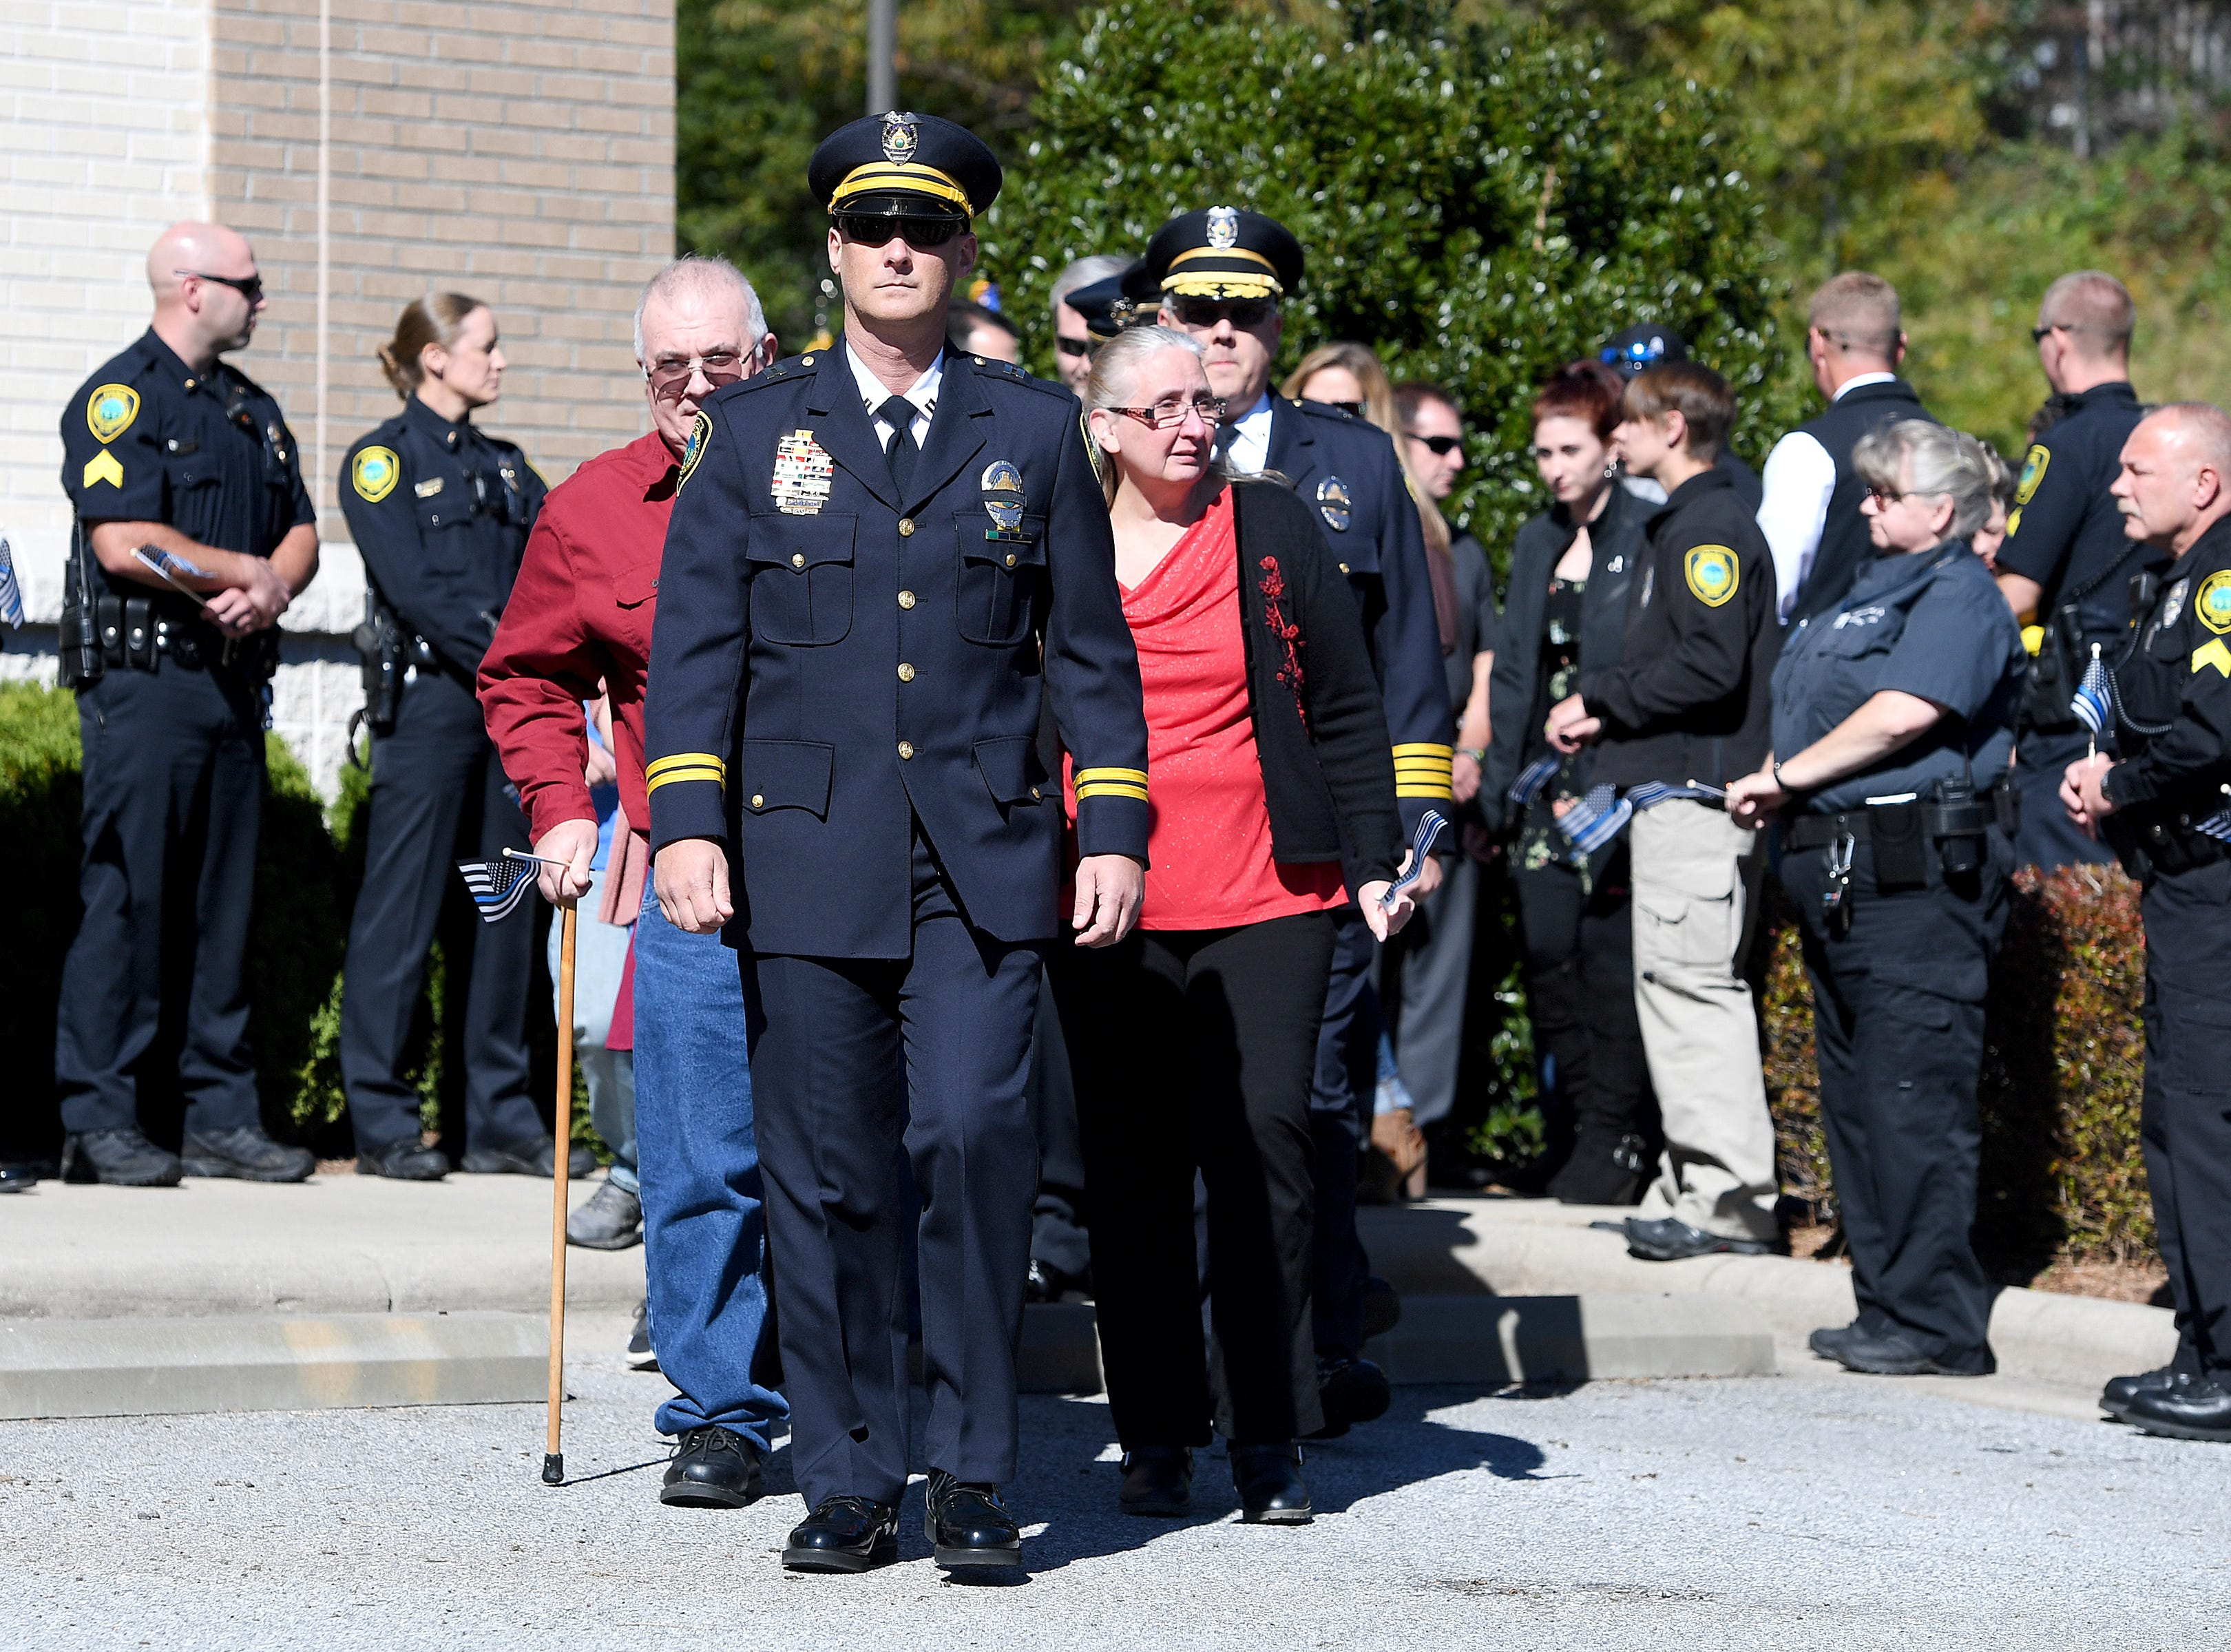 Family of Robert Bingaman are led to their seats for a ceremony to dedicate a portion of Old Haywood Road to the Asheville police officer at the Traffic Safety Office on the five-year-anniversary of his death on Oct. 29, 2018.